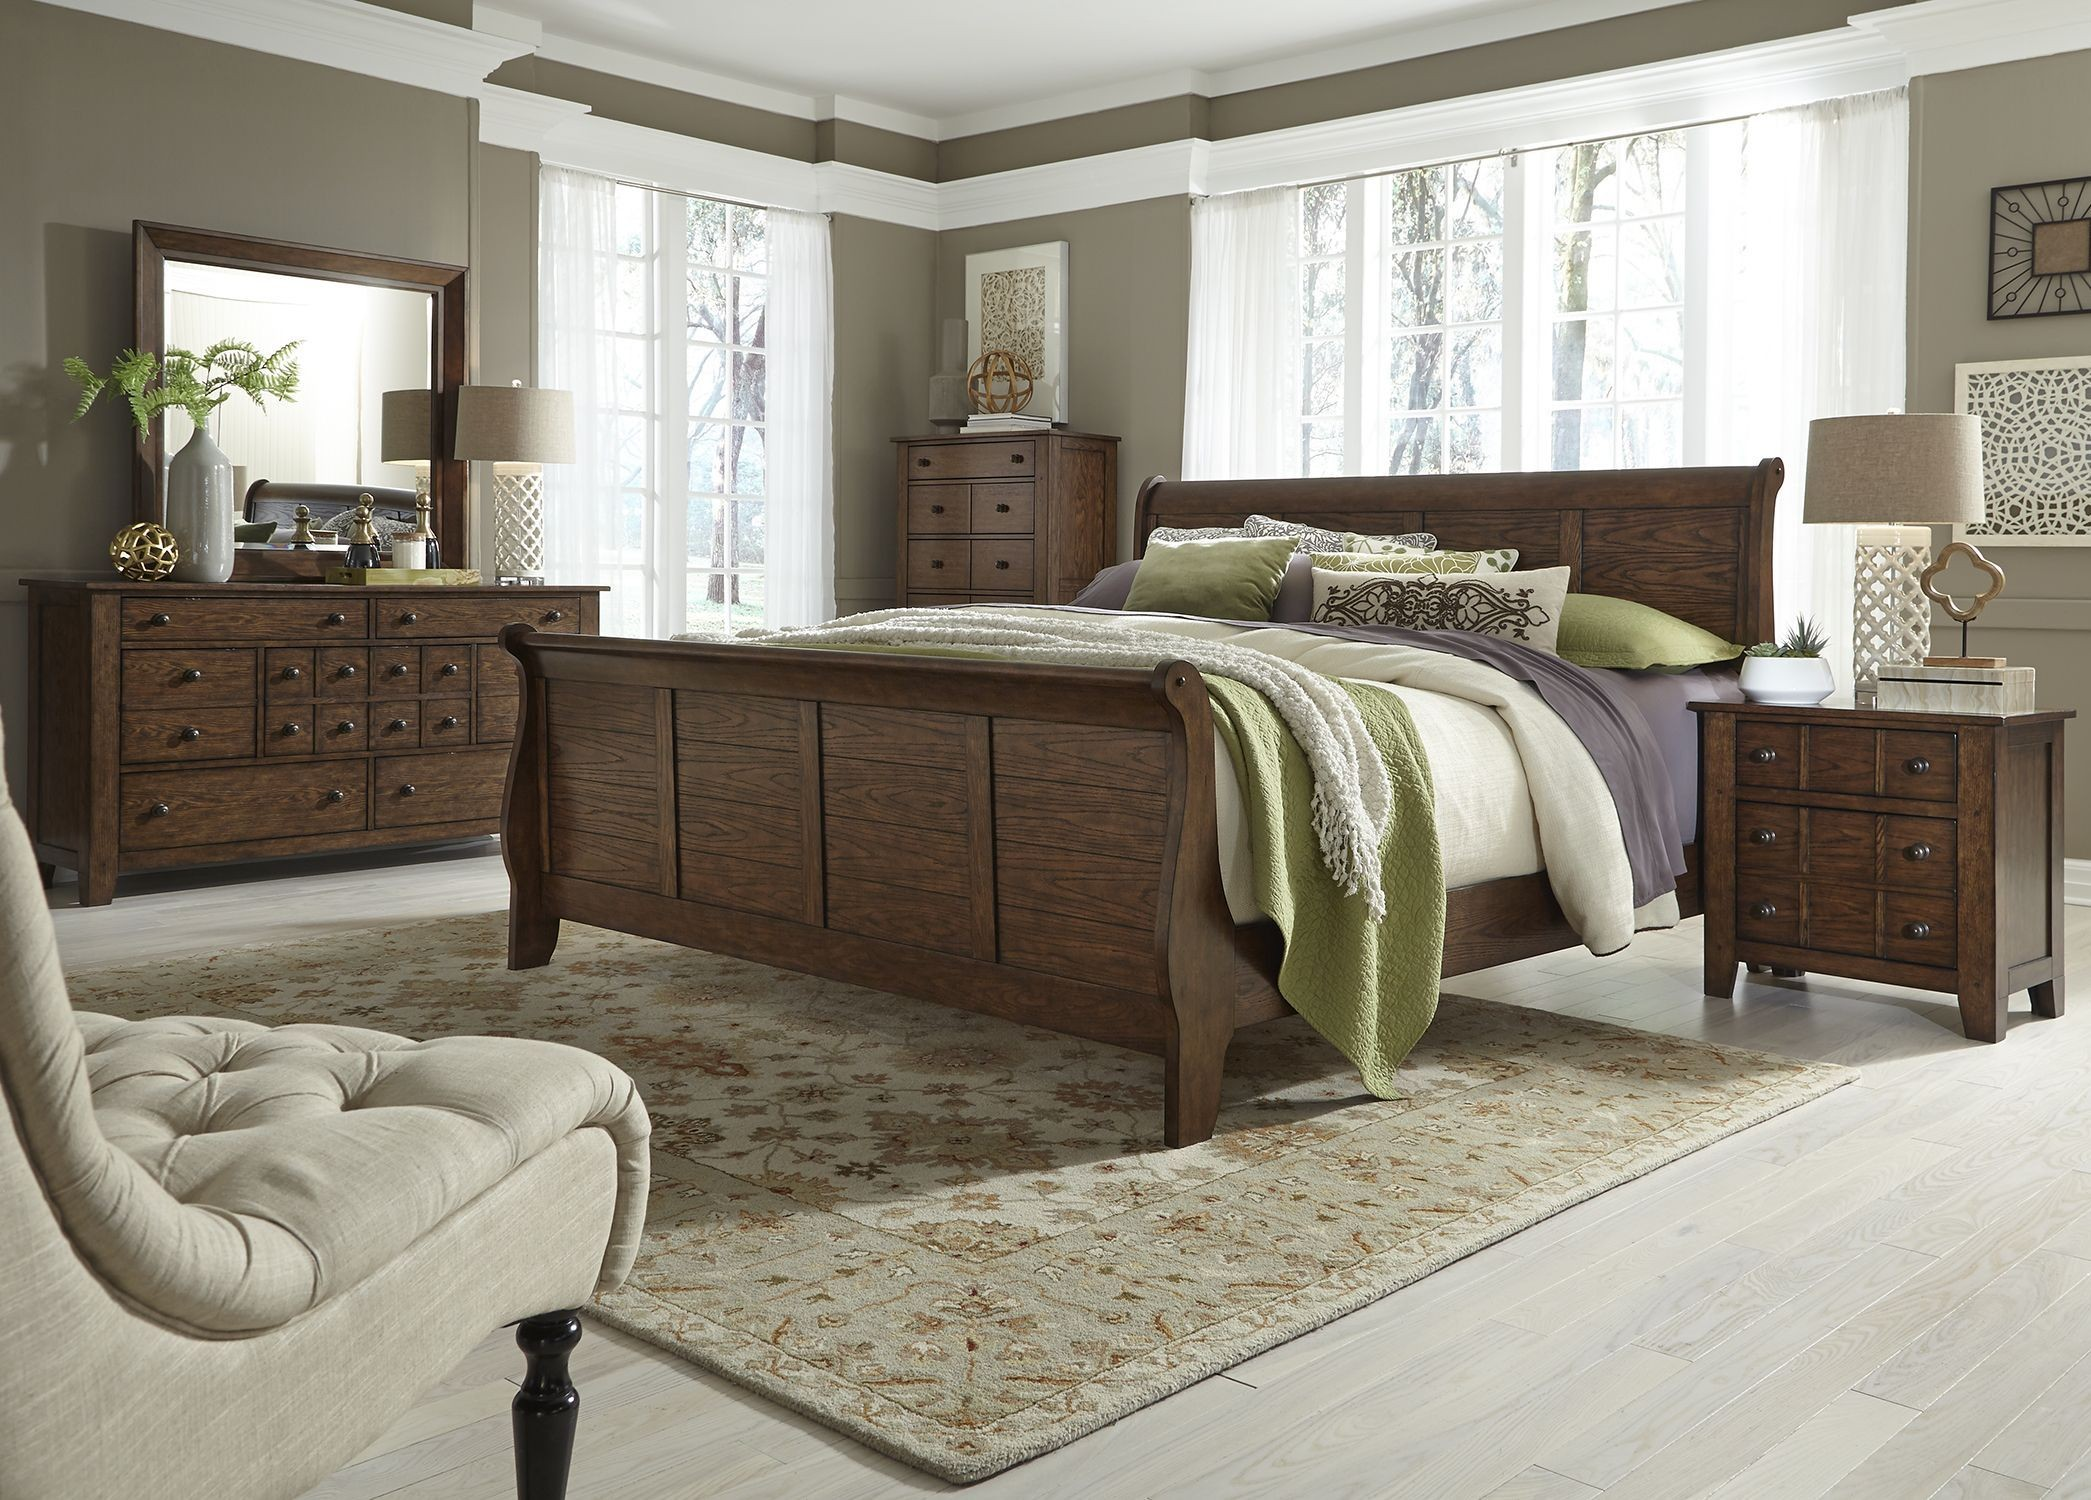 grandpas cabin brown sleigh bedroom set from liberty 10969 | 375 br qsldmcn liberty